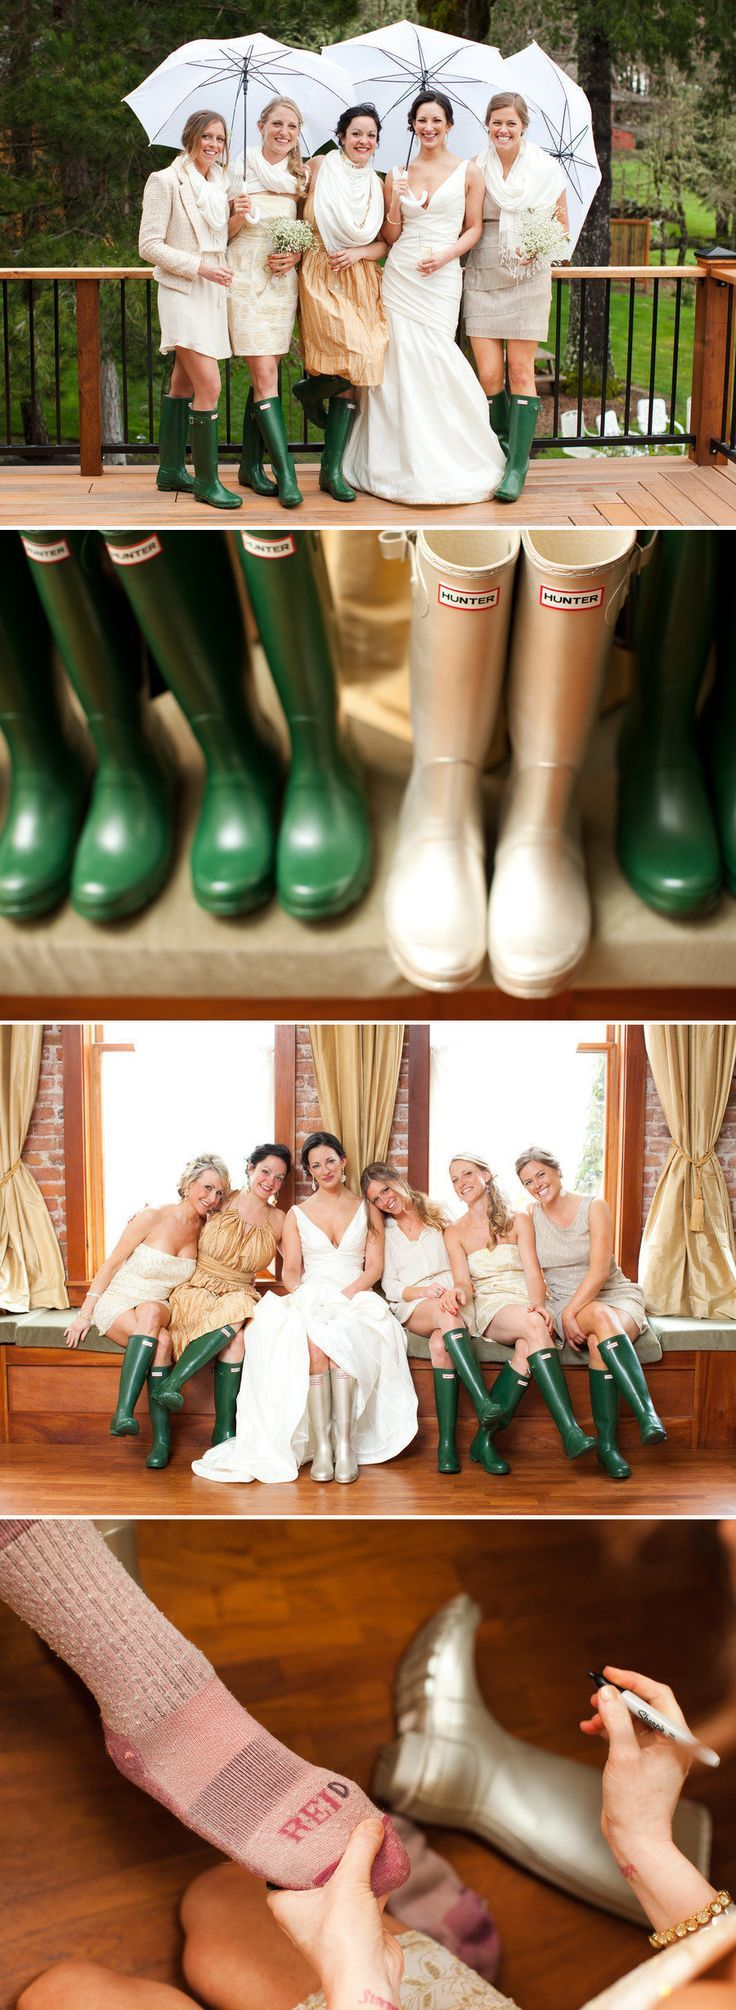 Um absolutely incorporating hunter rain boots in my wedding! Love this idea!